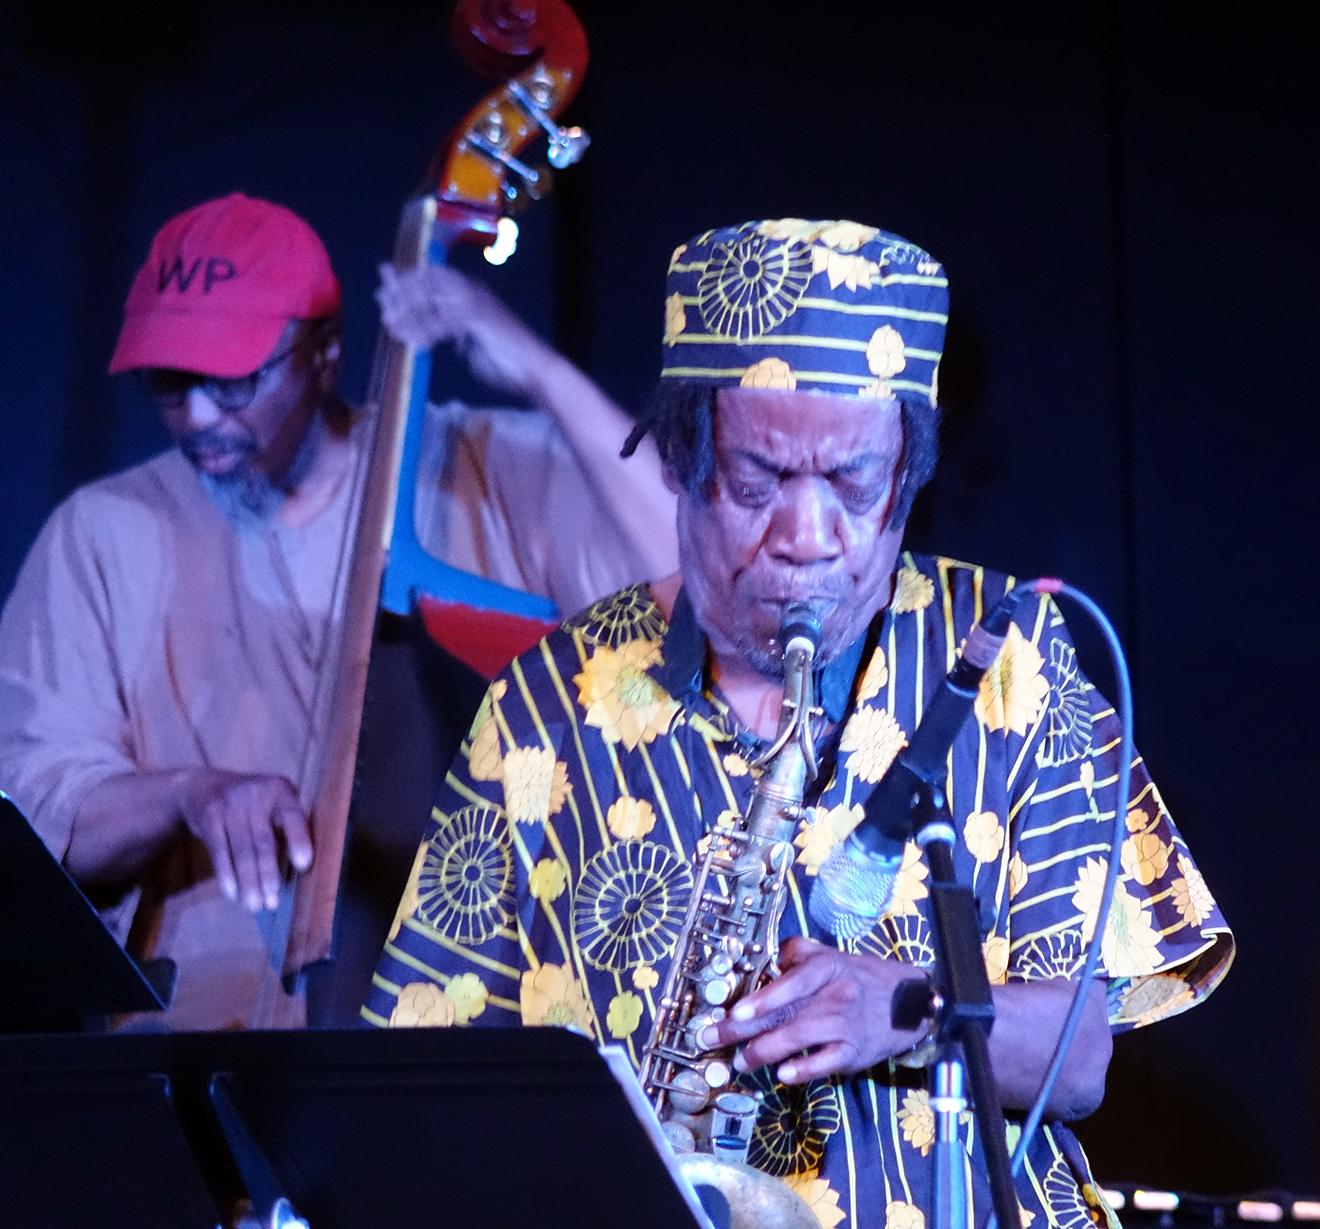 William Parker & Jemeel Moondoc at Vision Festival 20